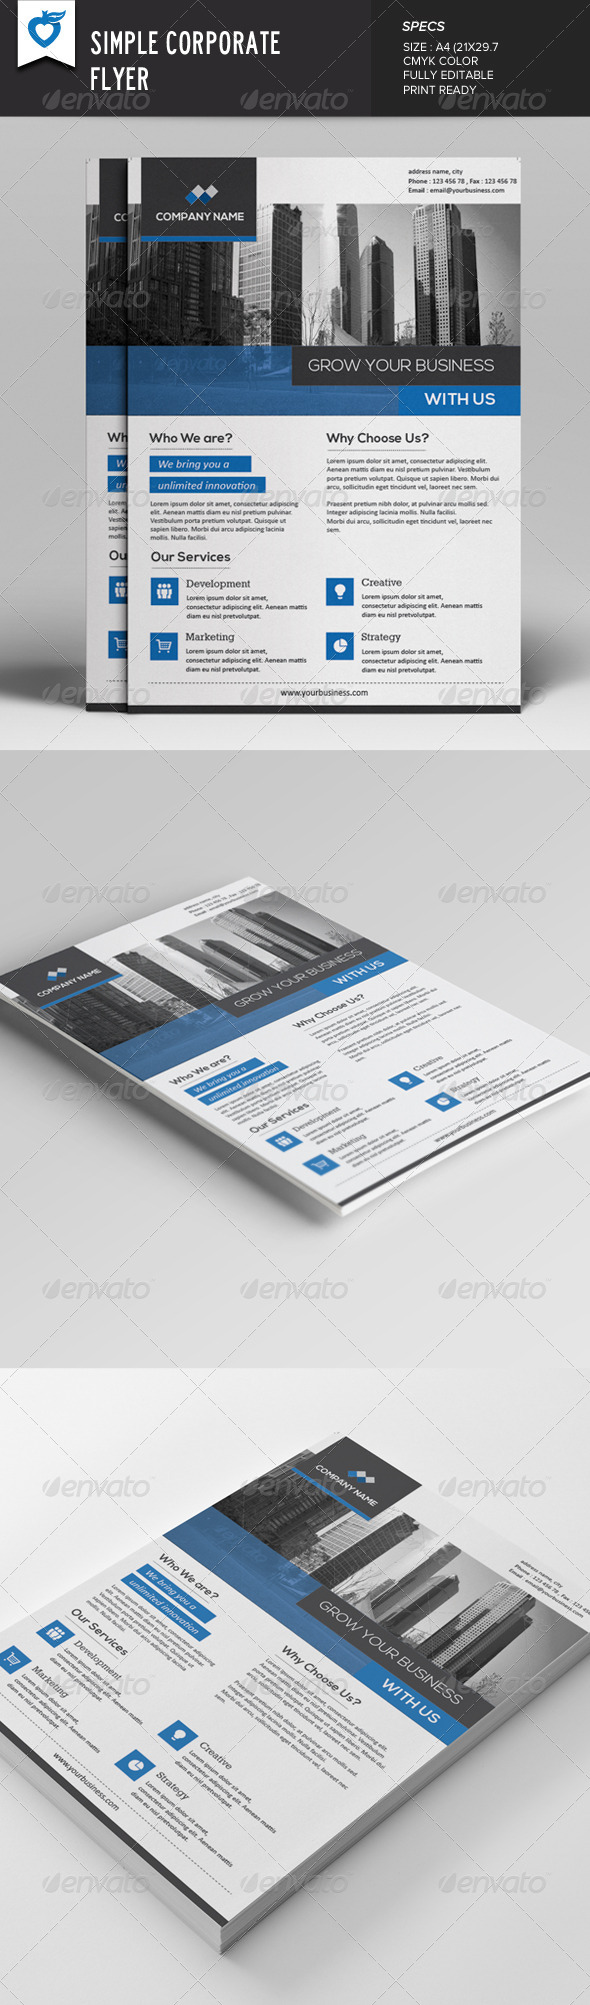 GraphicRiver Simple Corporate Flyer 7839827